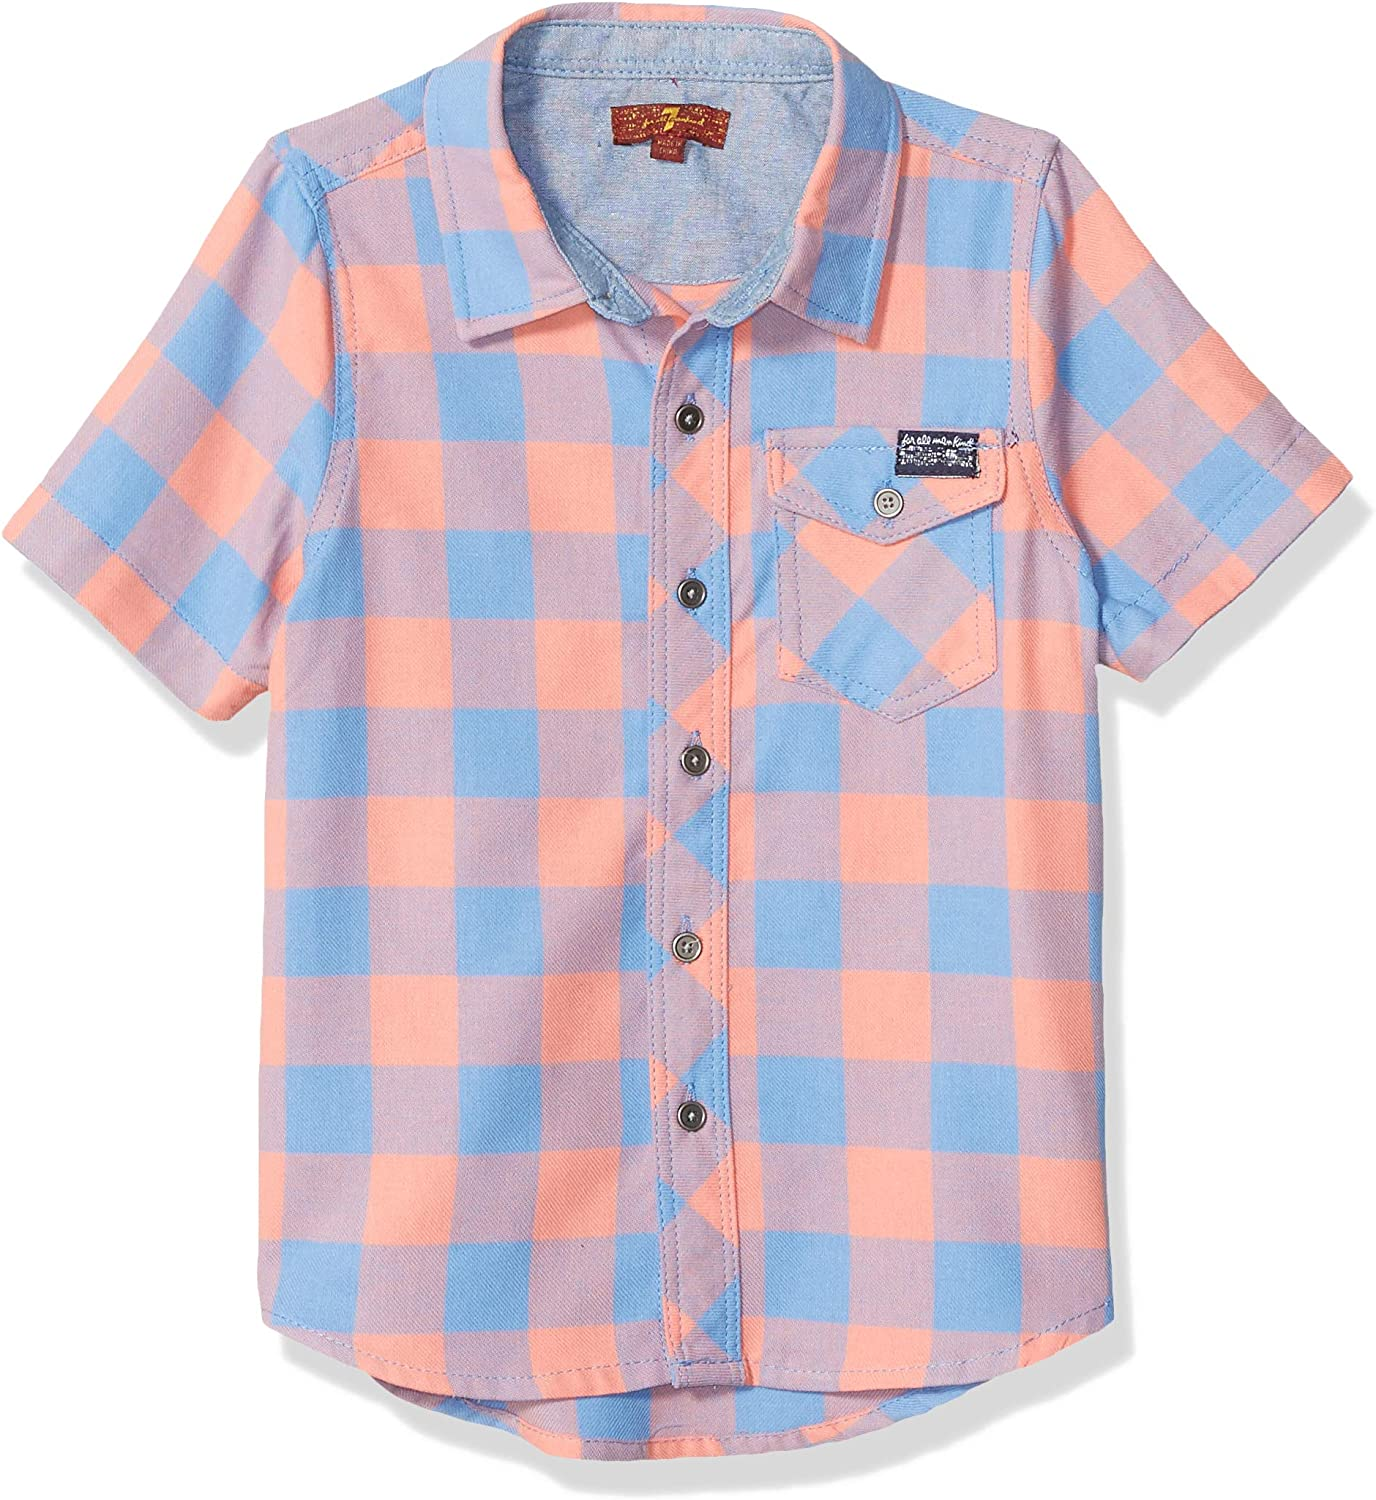 7 For All Mankind Boys' Button Up Short Sleeve Shirt